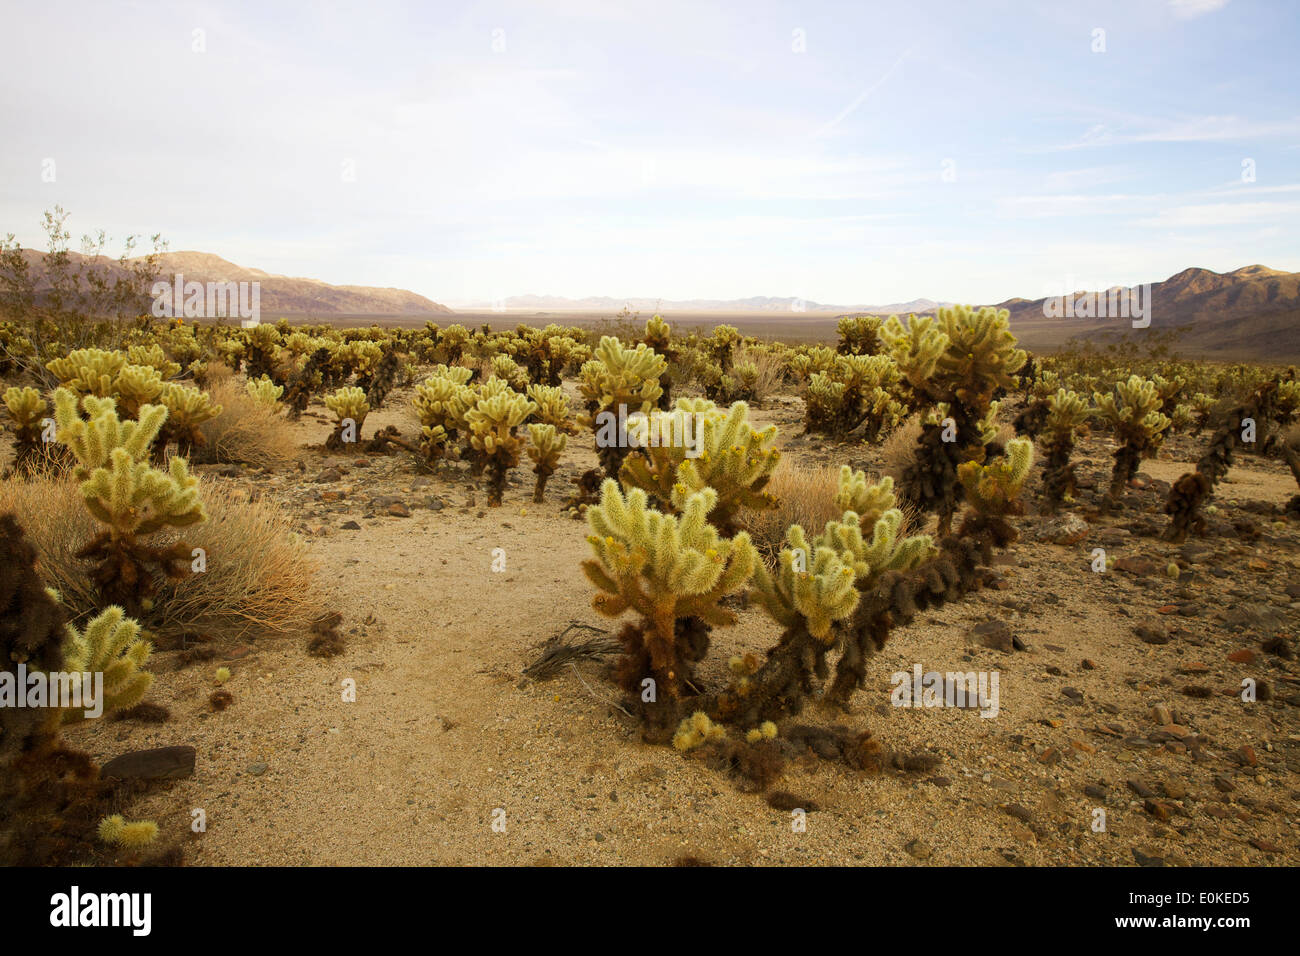 Cholla cactus in Joshua Tree National Park in Southern California, USA - Stock Image